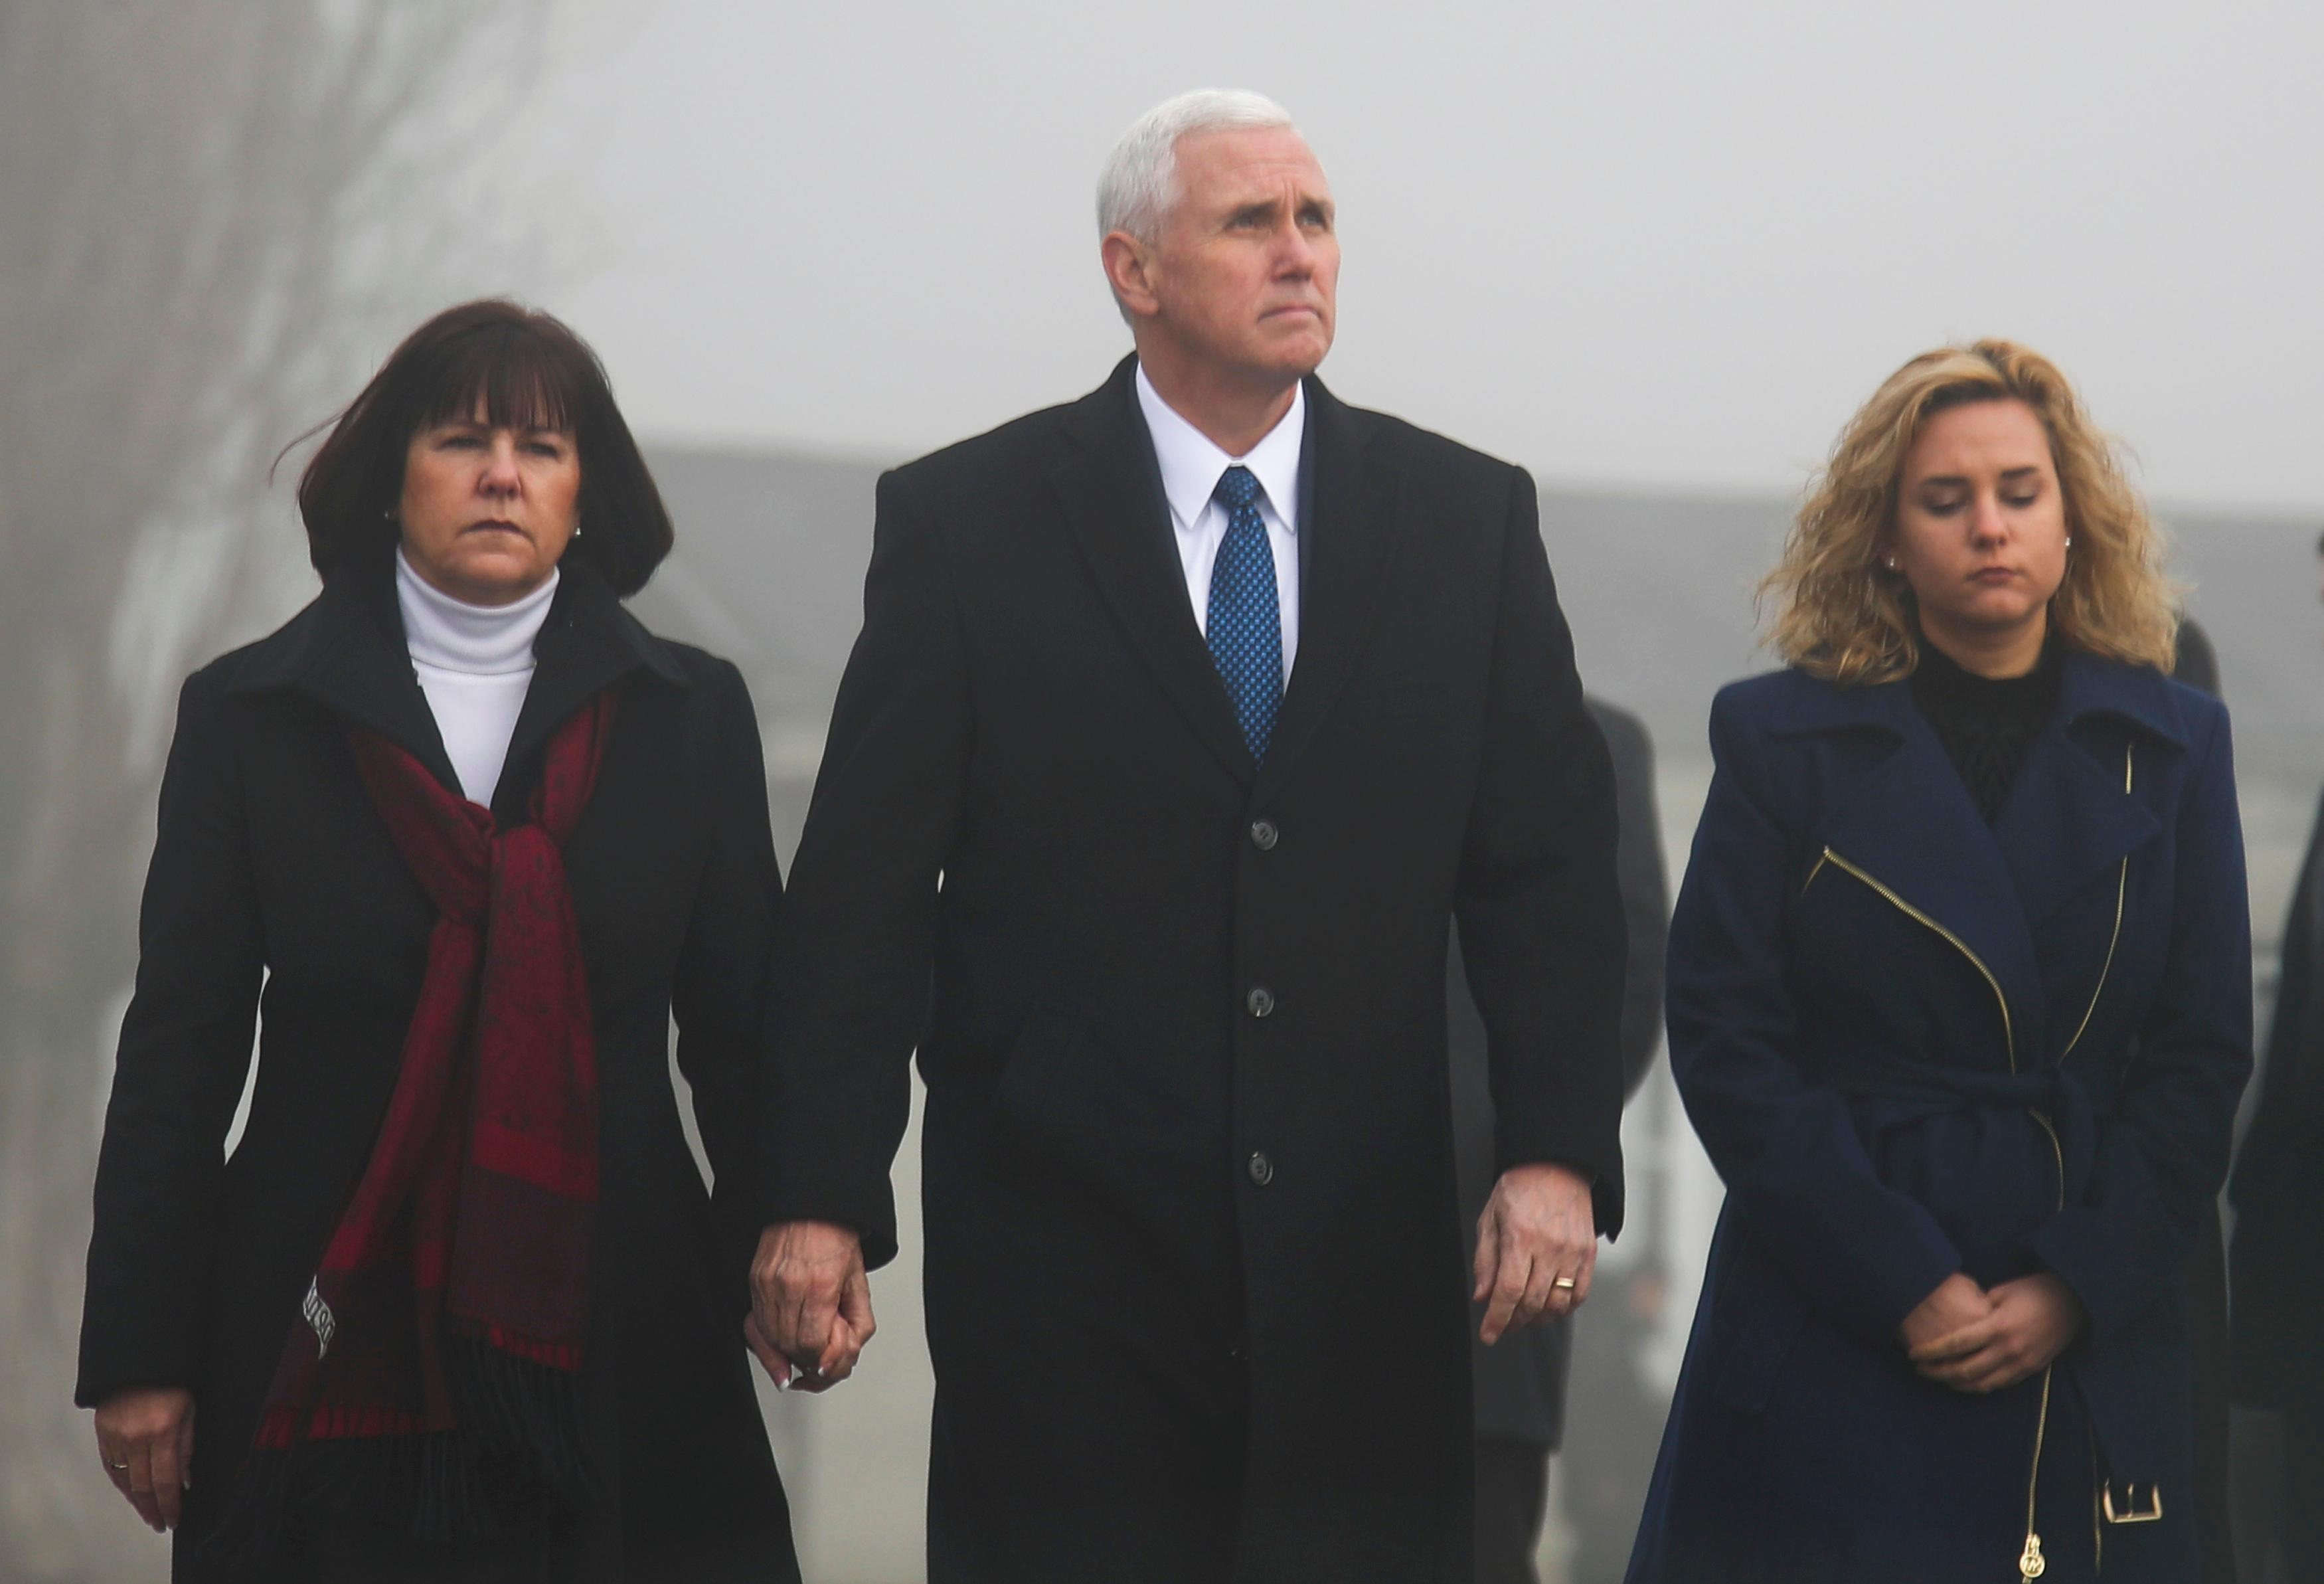 Mike Pence visits Nazi concentration camp with family